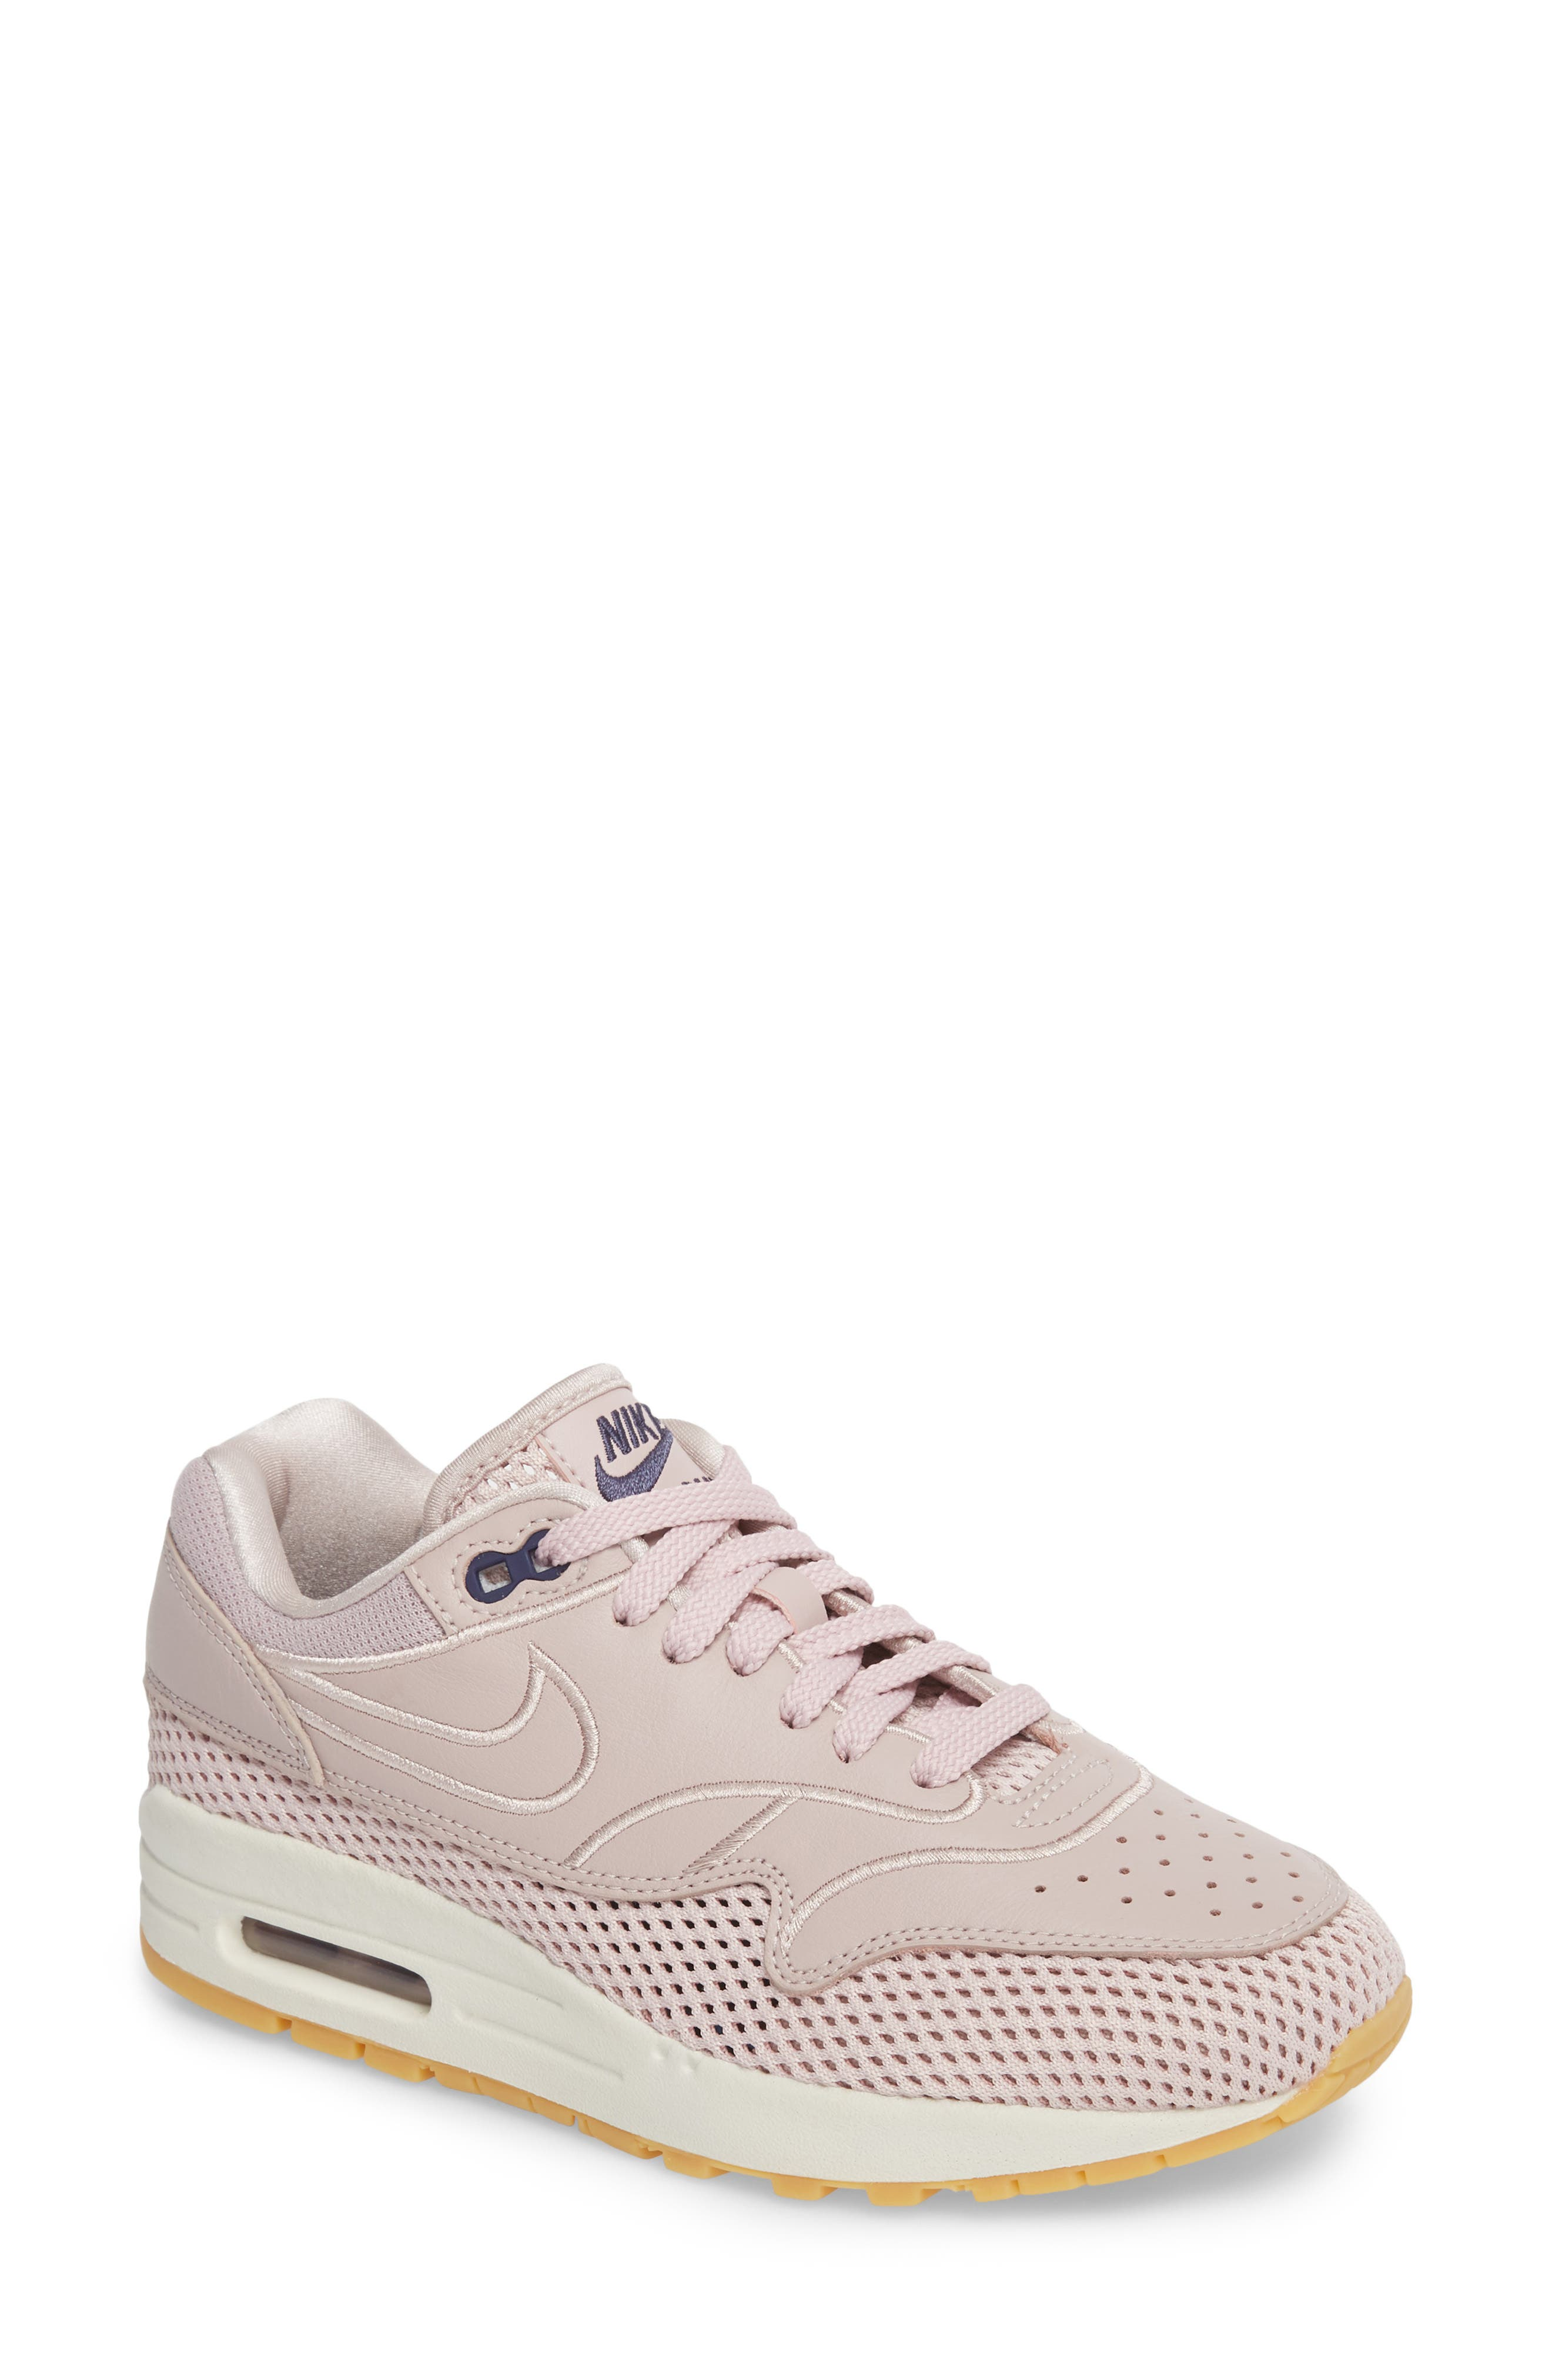 Air Max 1 SI Sneaker,                         Main,                         color, PARTICLE ROSE/ PARTICLE ROSE